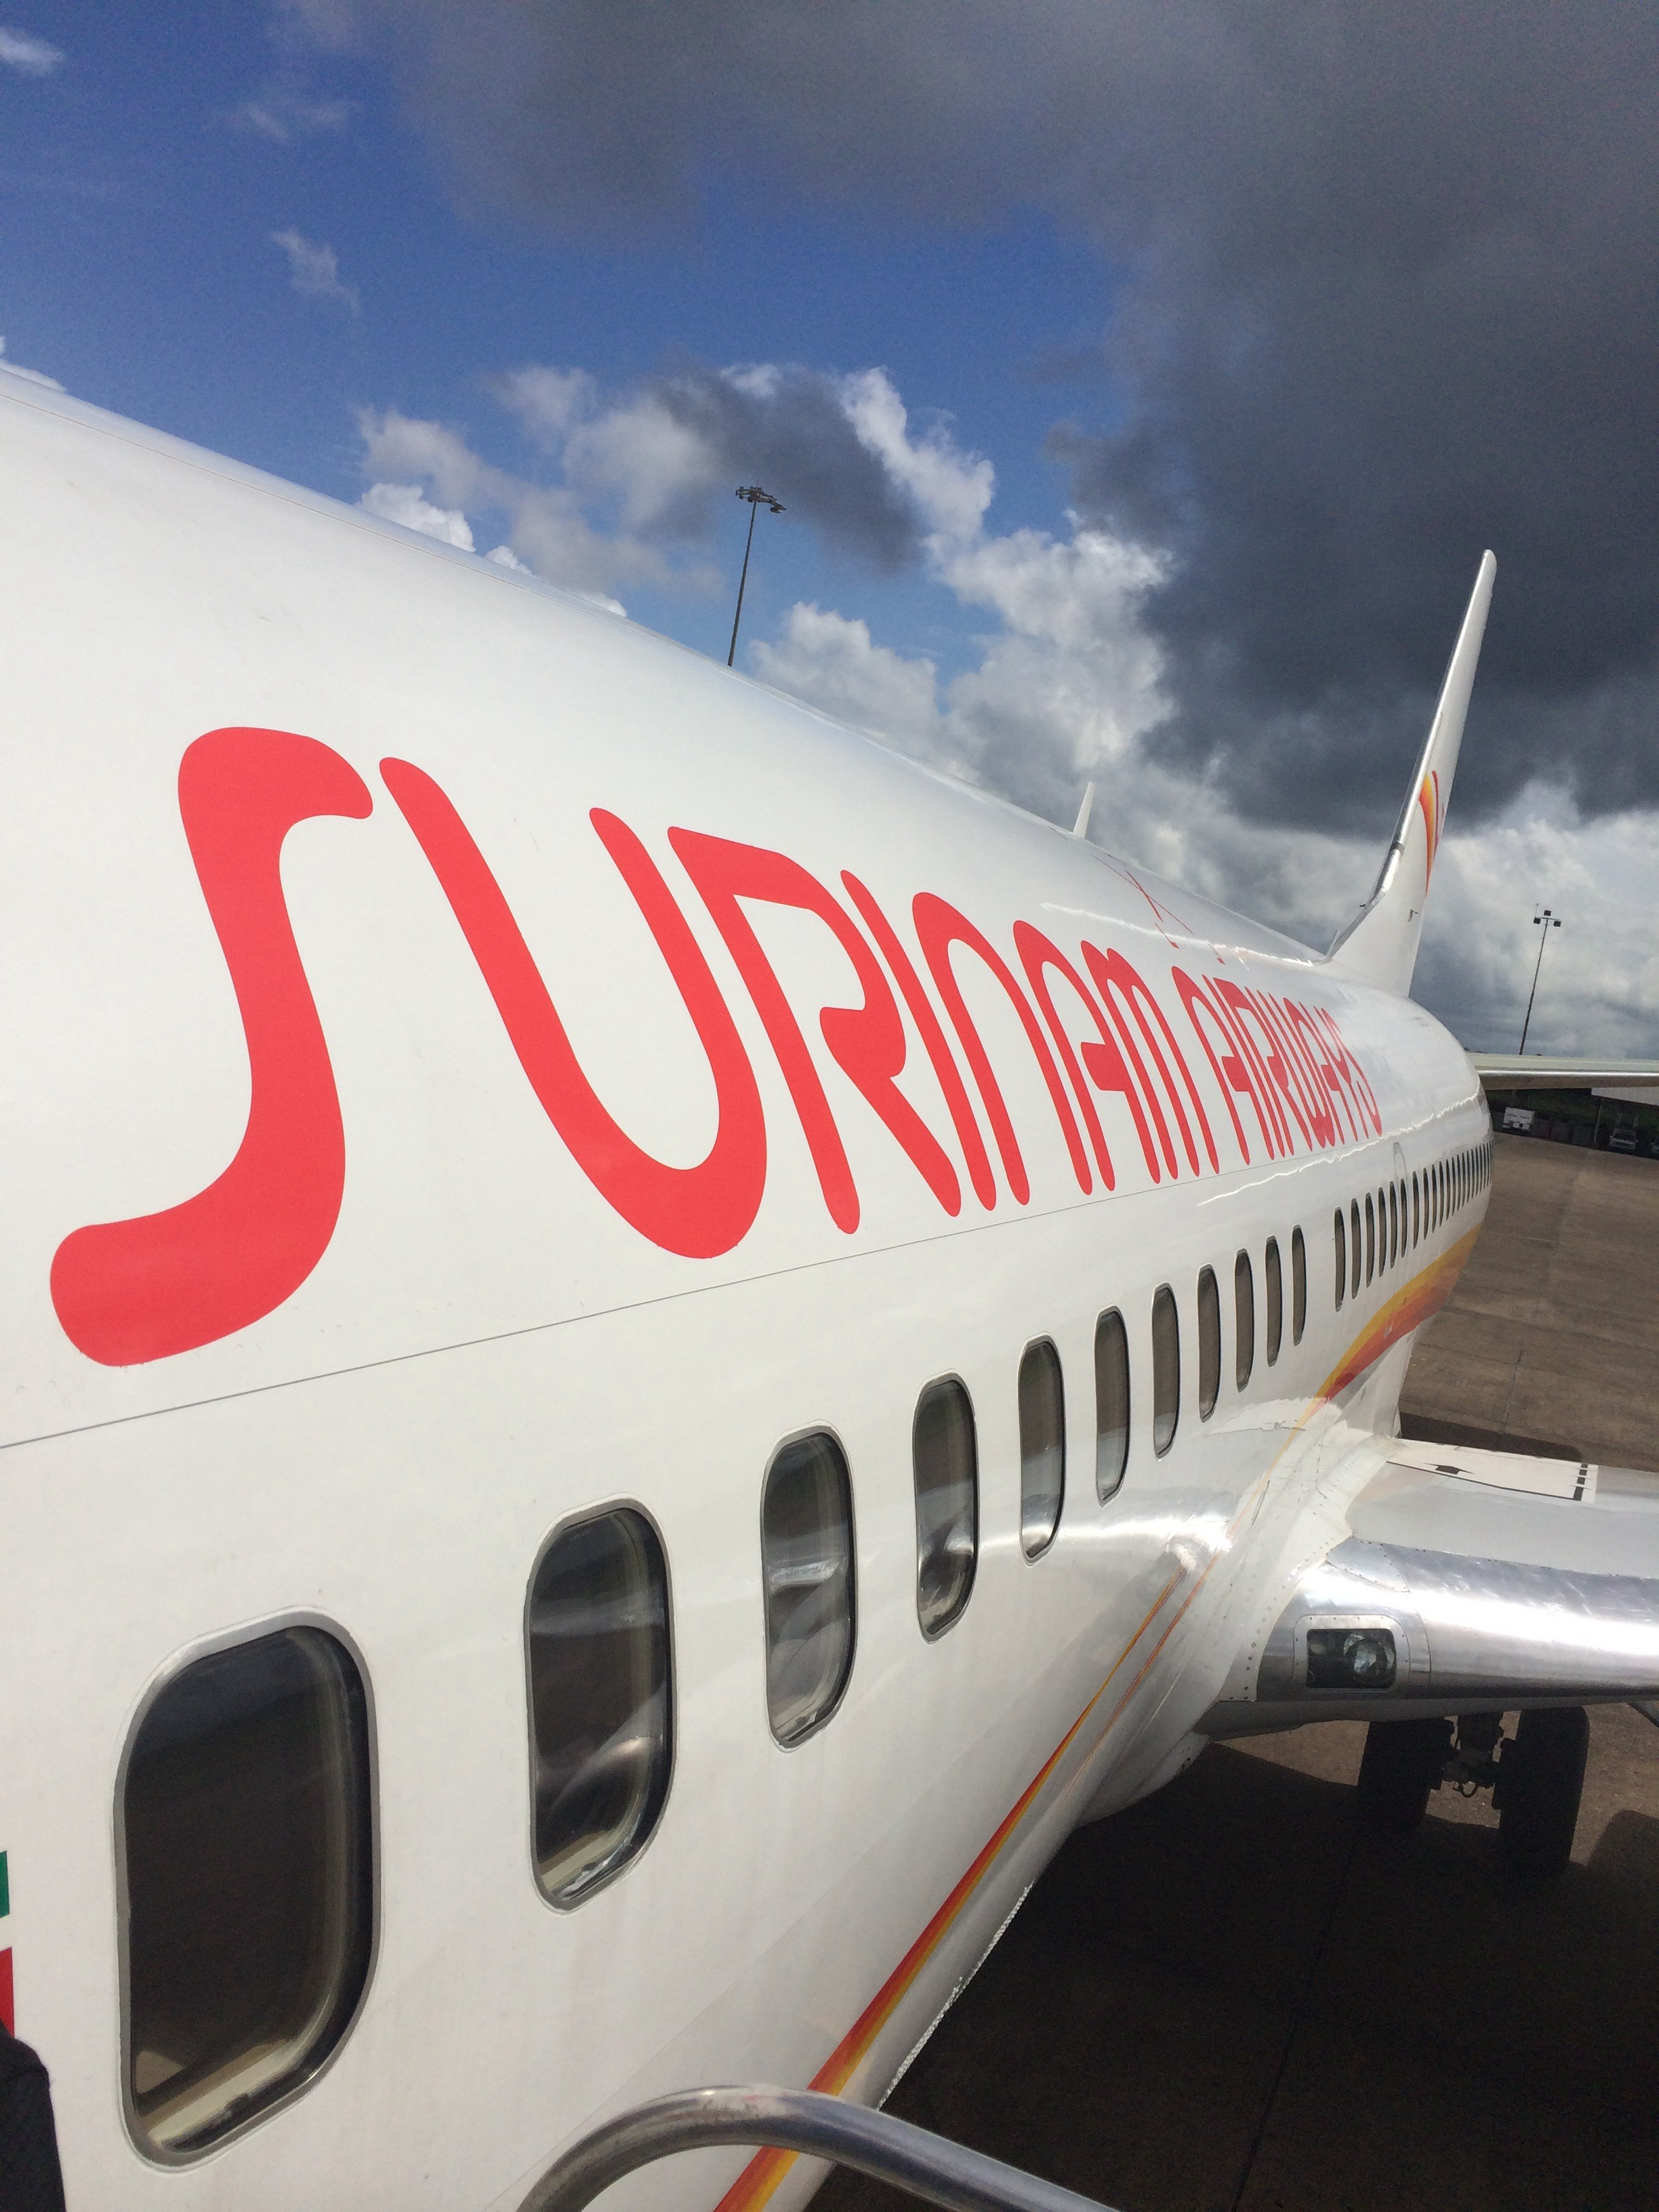 Arriving in Cayenne on Suriname Airways